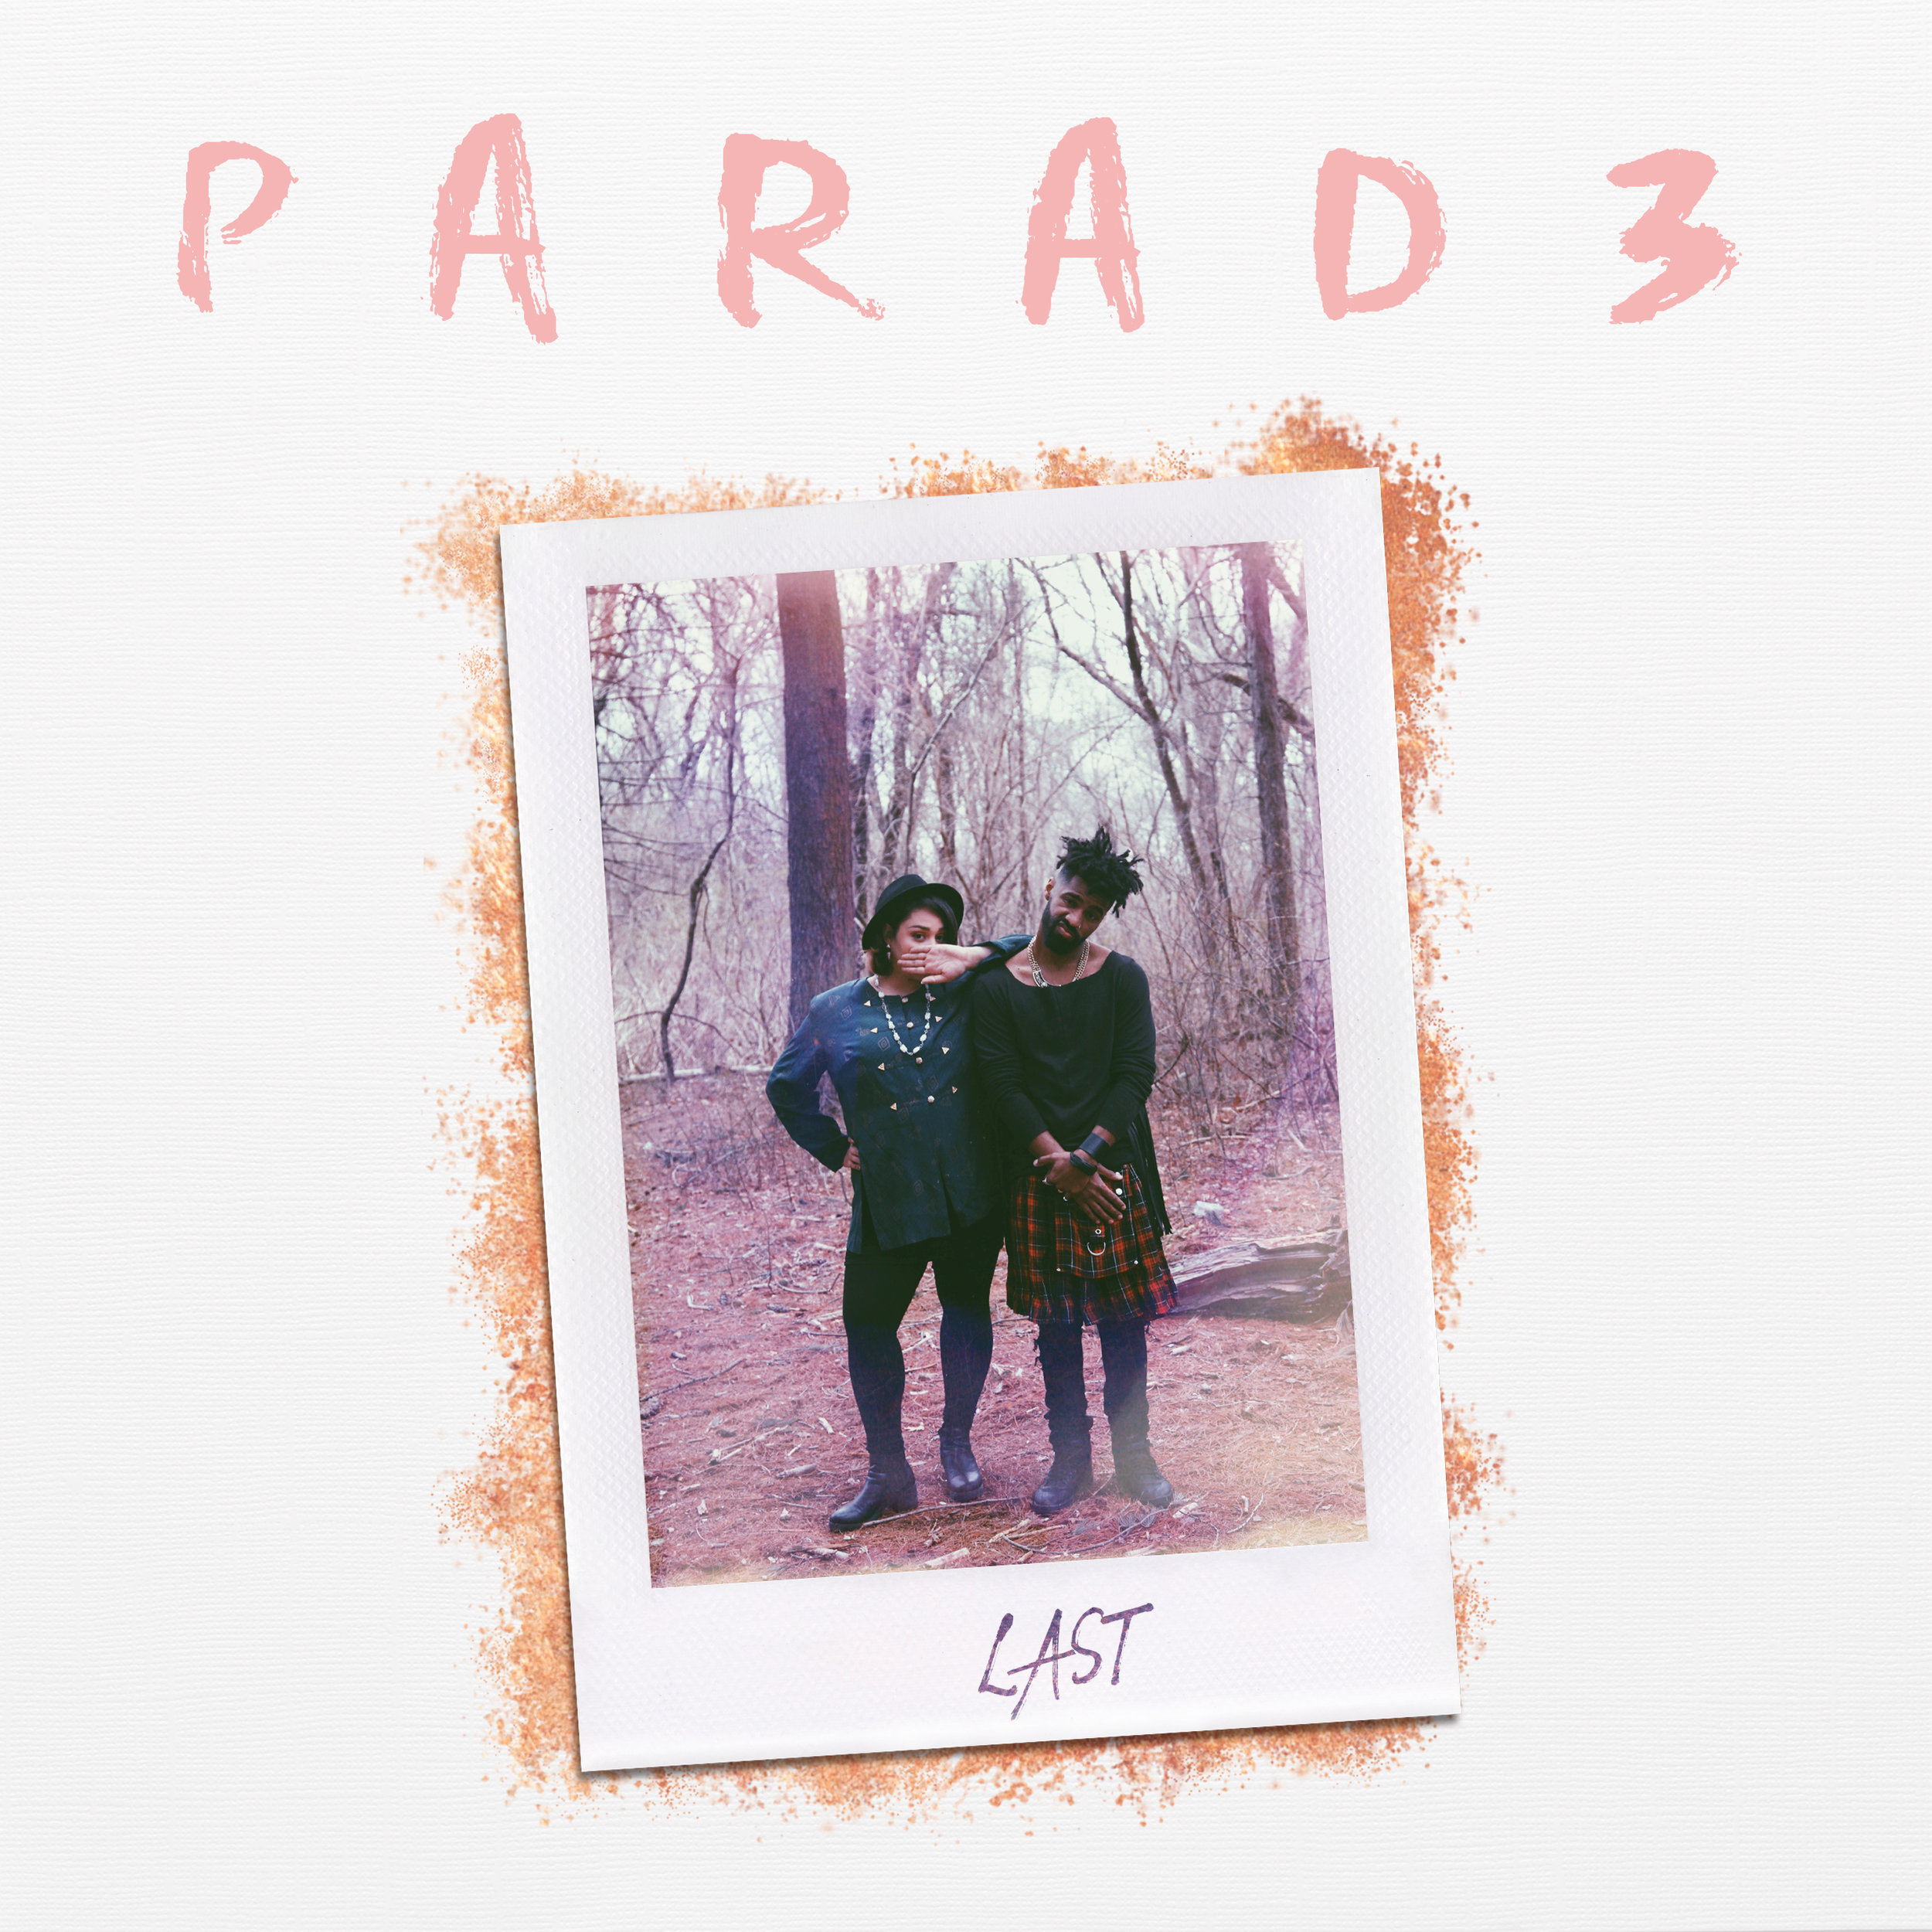 Parade-LAST-DIGITAL RELEASE COVER.jpg